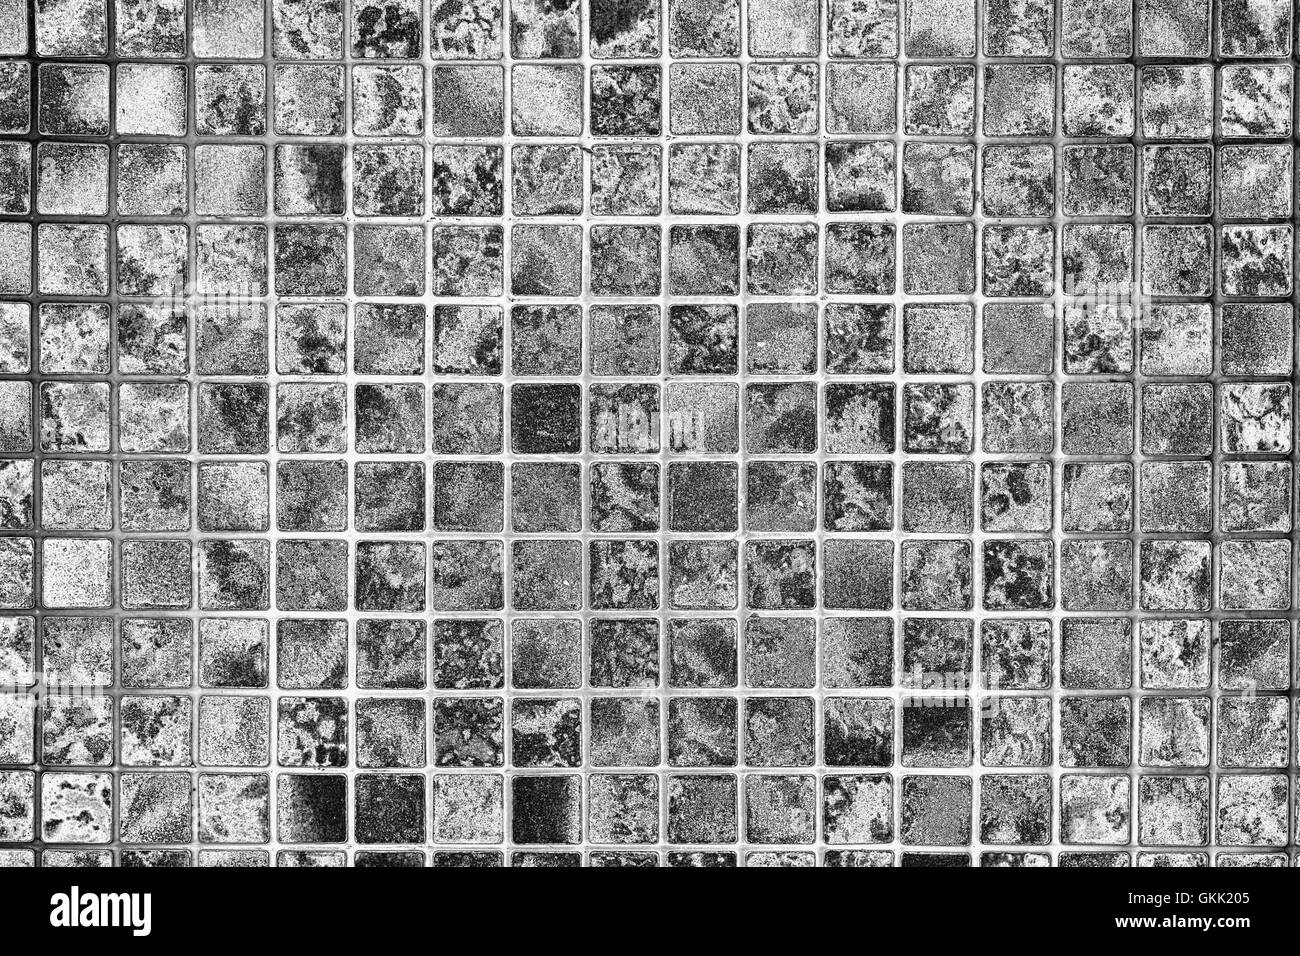 Kitchen Tiles Background   Stock Image